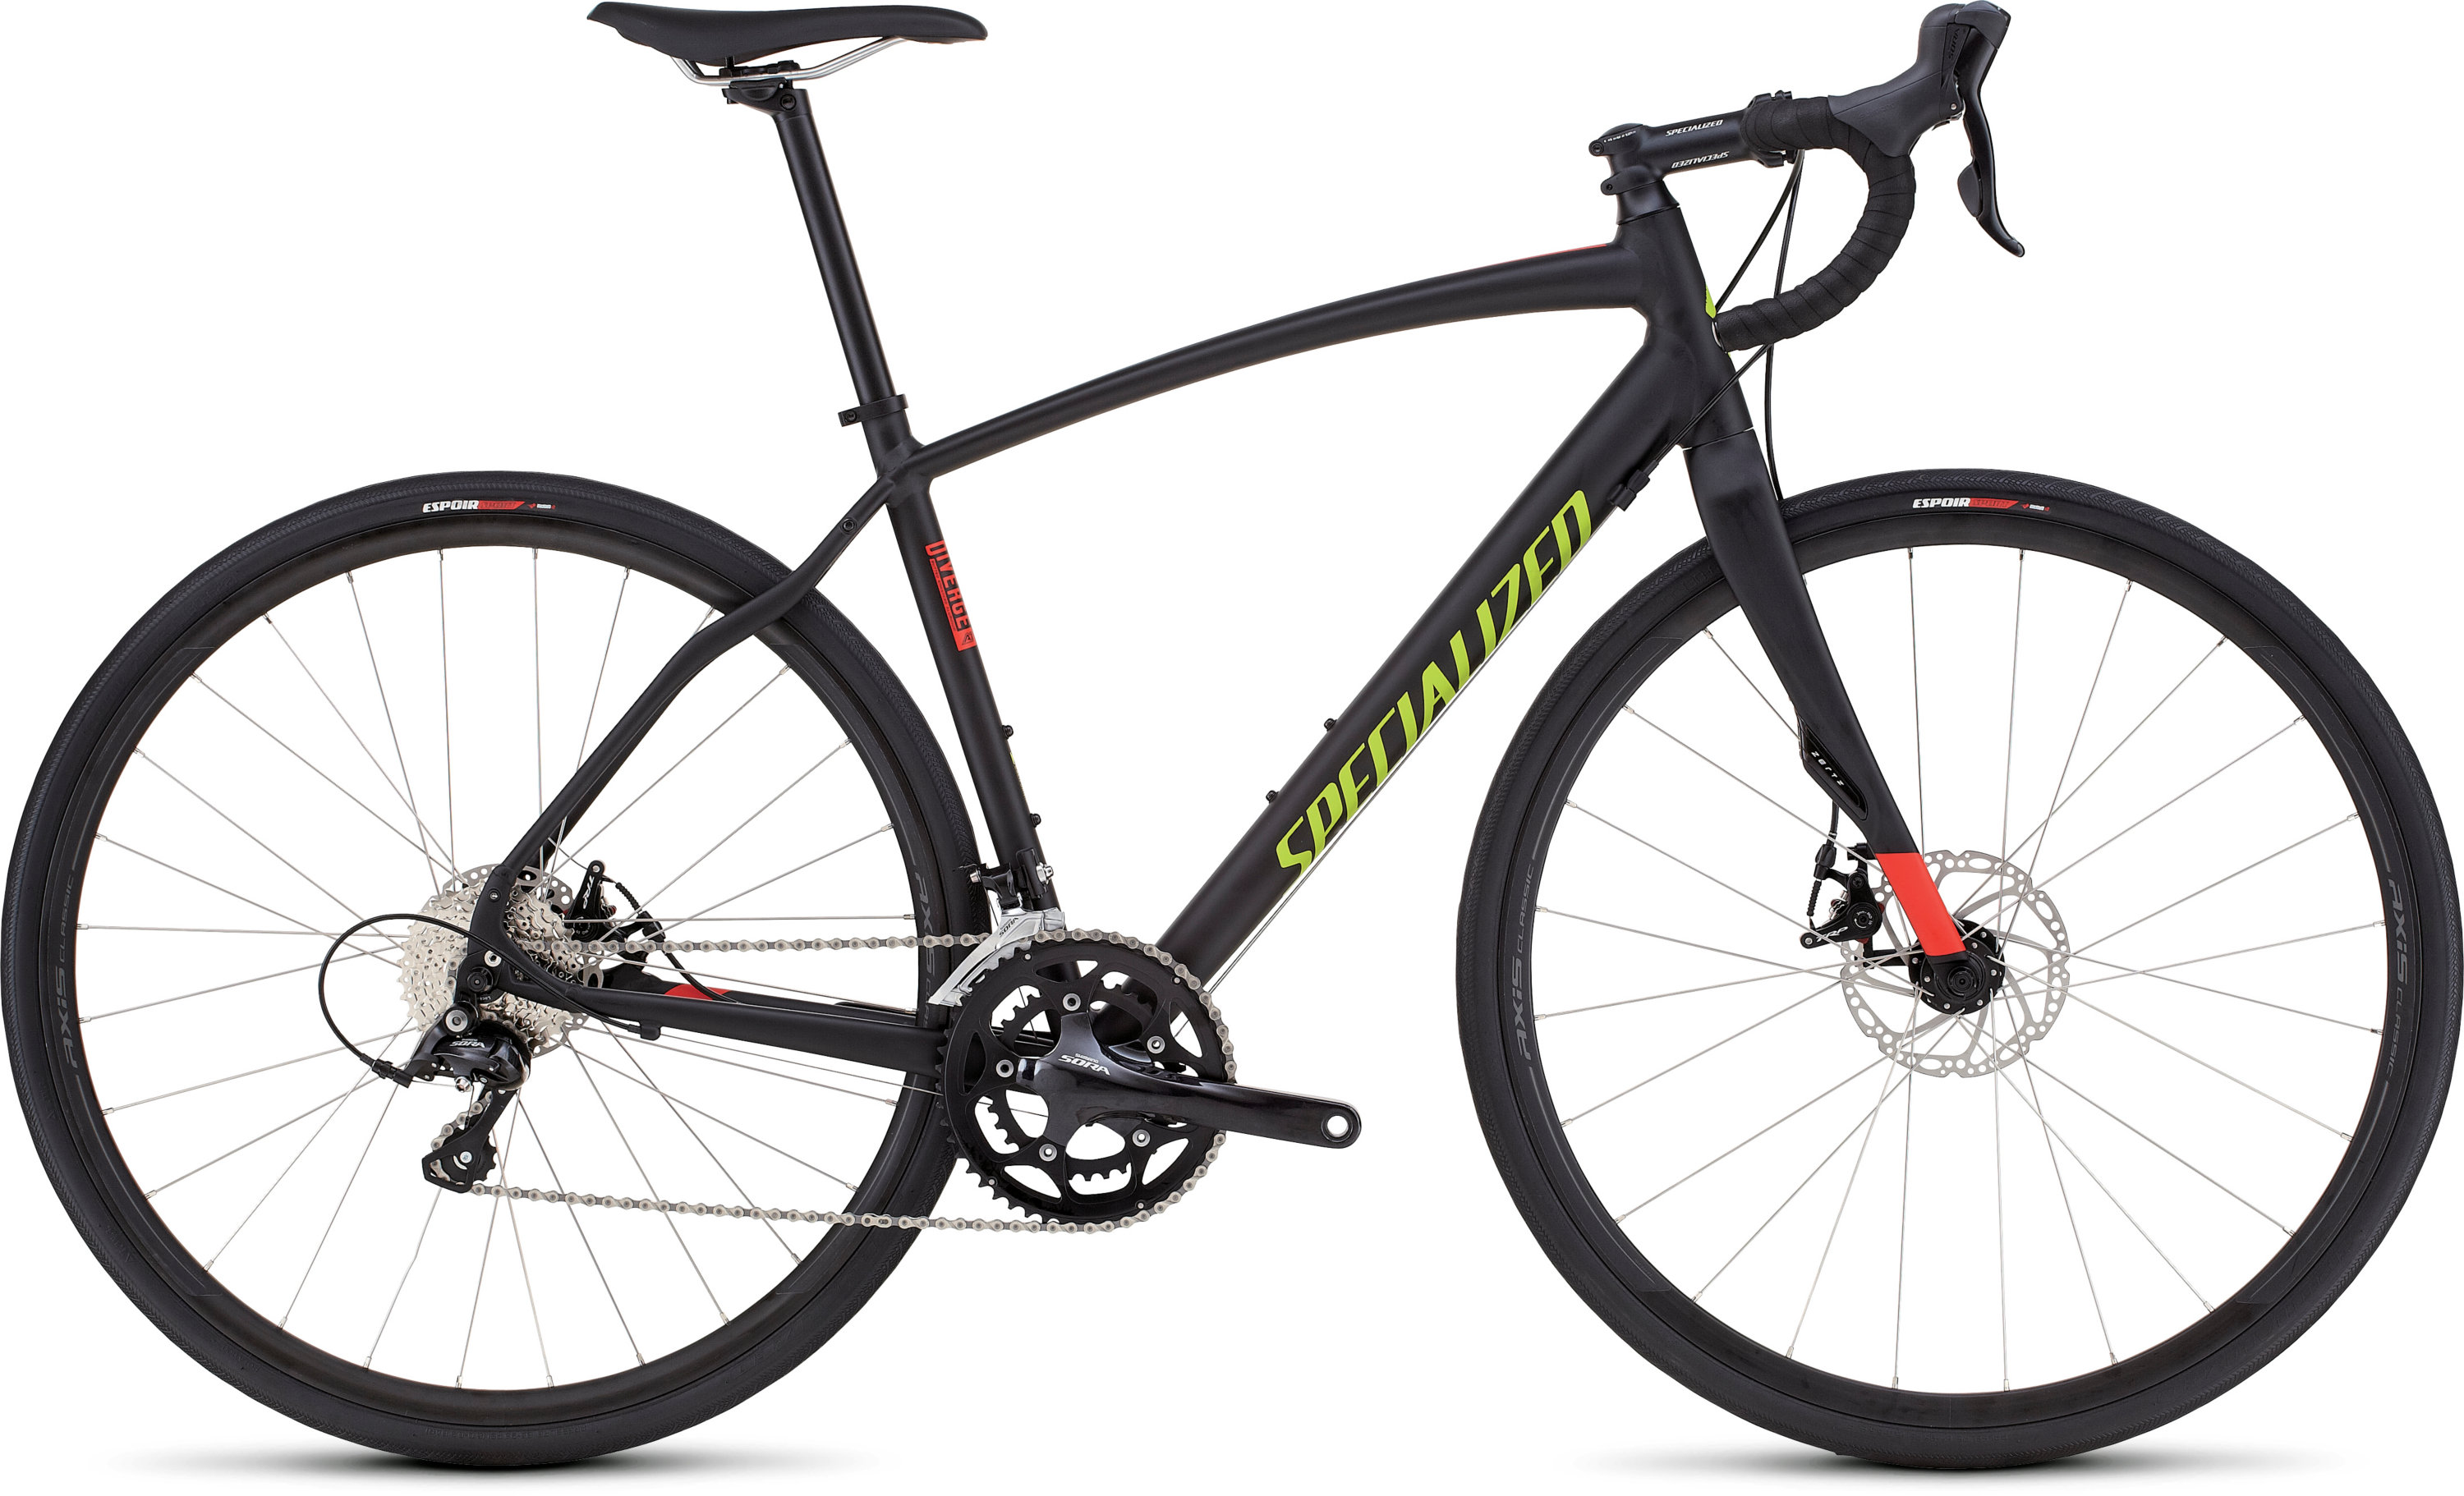 SPECIALIZED DIVERGE SPORT A1 CEN BLK/RKTRED/HYP 54 - SPECIALIZED DIVERGE SPORT A1 CEN BLK/RKTRED/HYP 54